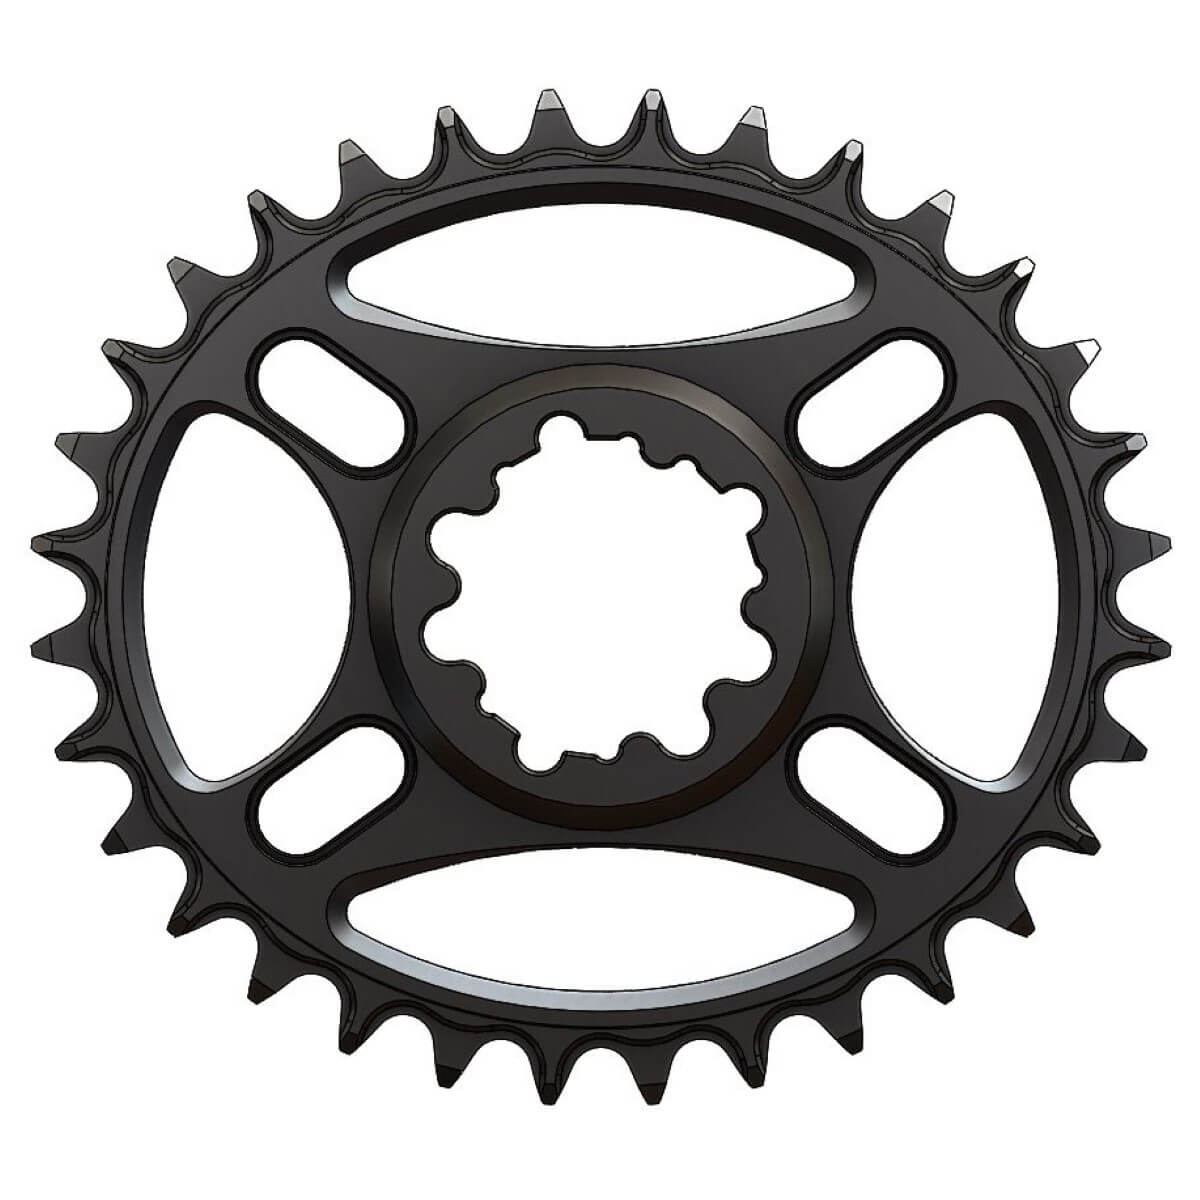 Pilo C57 Chainring Elliptic Narrow Wide 32T for Sram direct dub. Offset: 3 mm